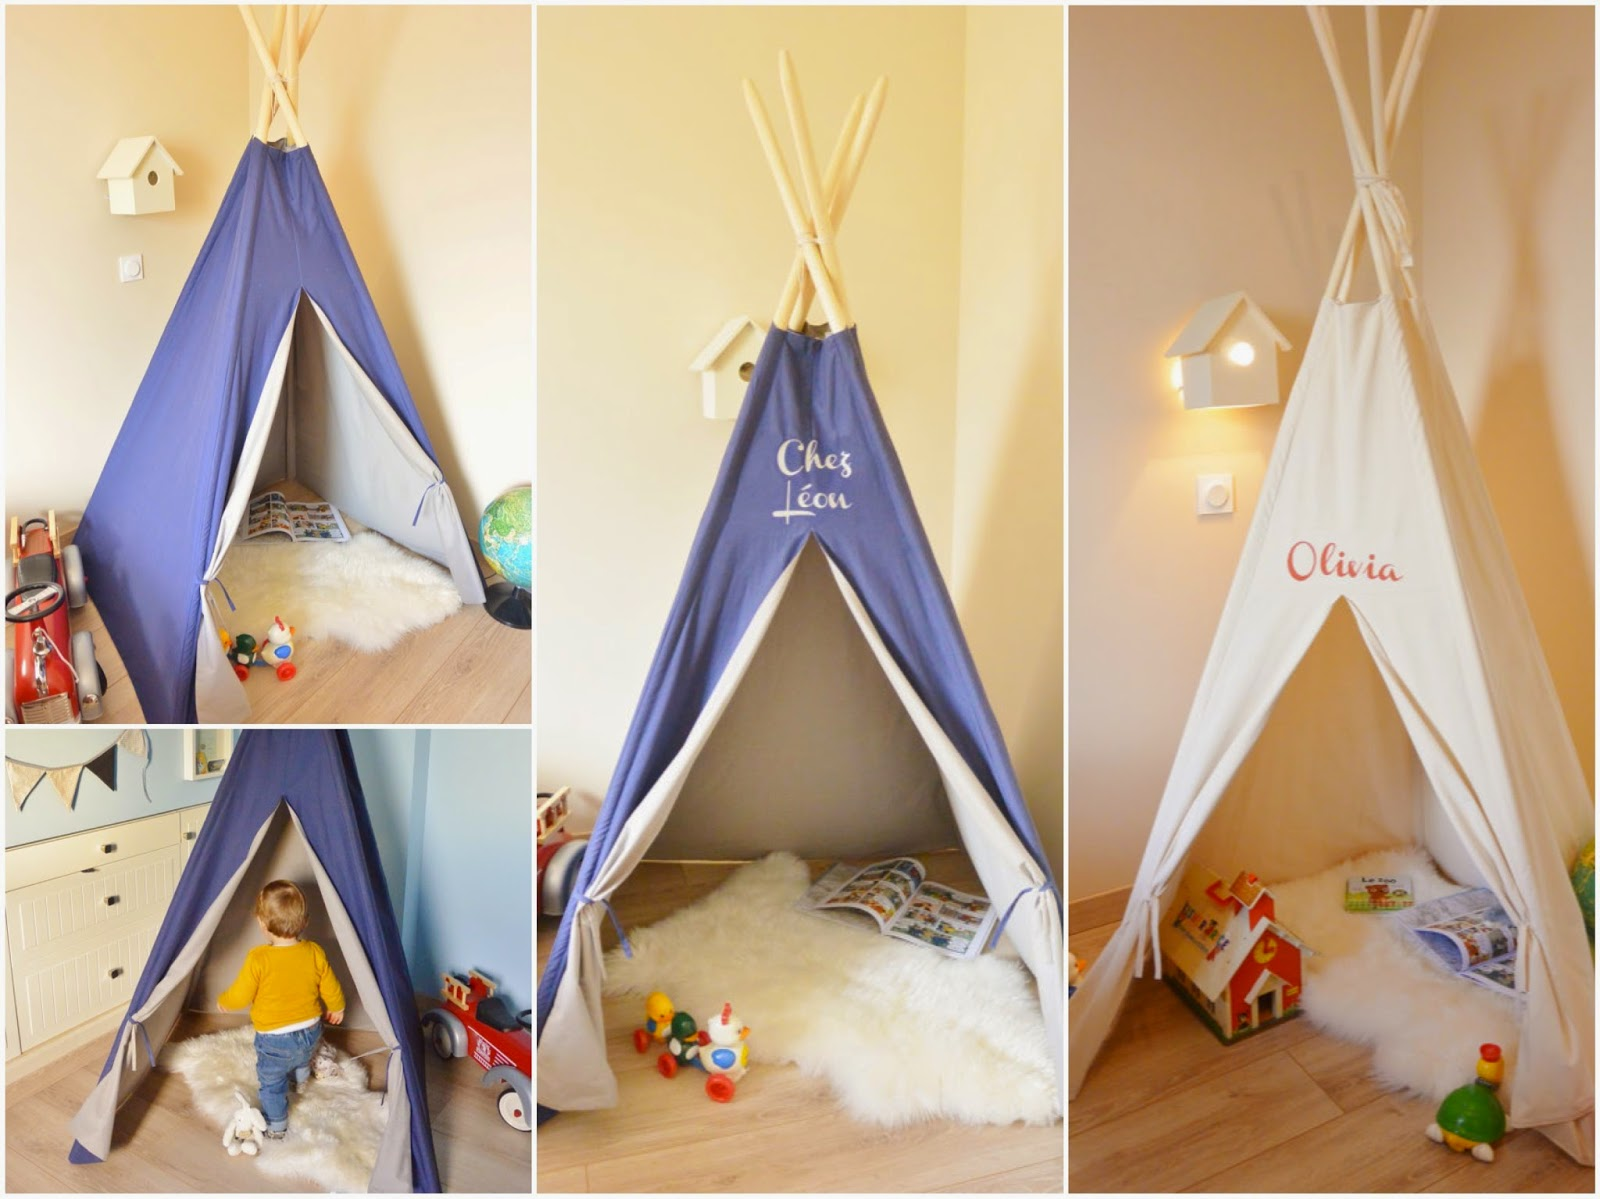 un nouveau regard d co enfant une tente tipi dans la. Black Bedroom Furniture Sets. Home Design Ideas